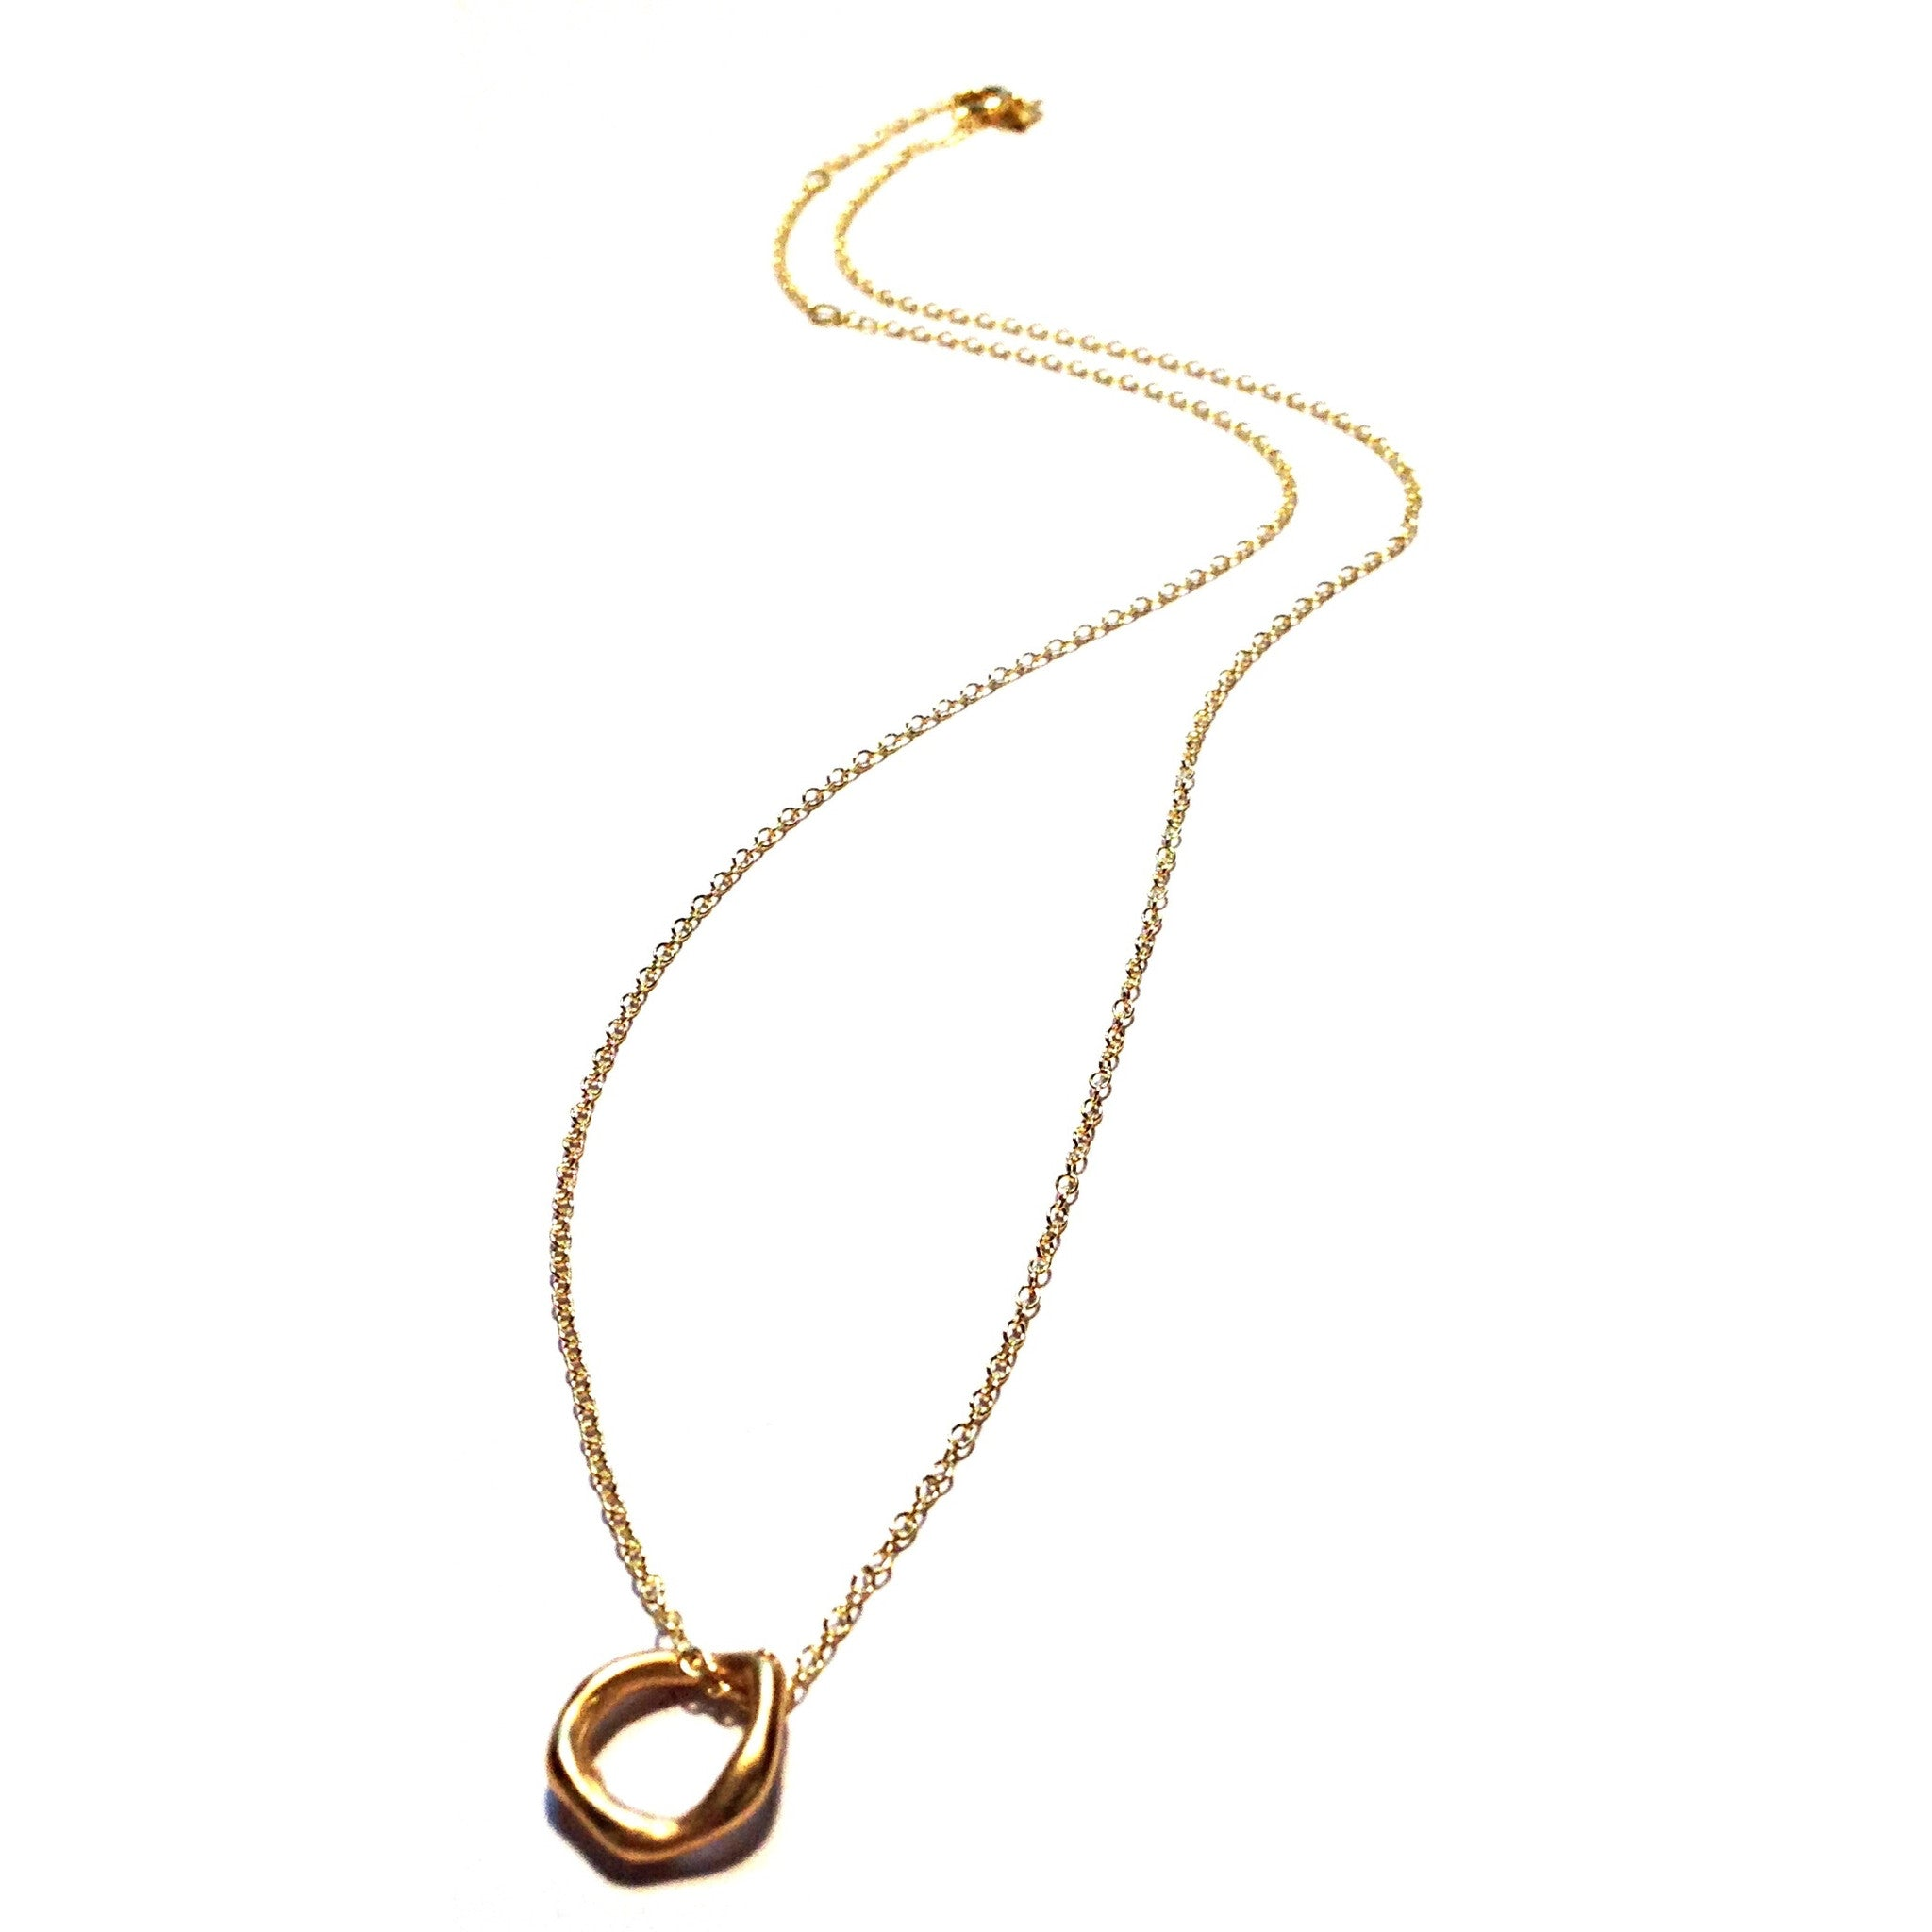 Gold Vermeil Ring Pendant Necklace